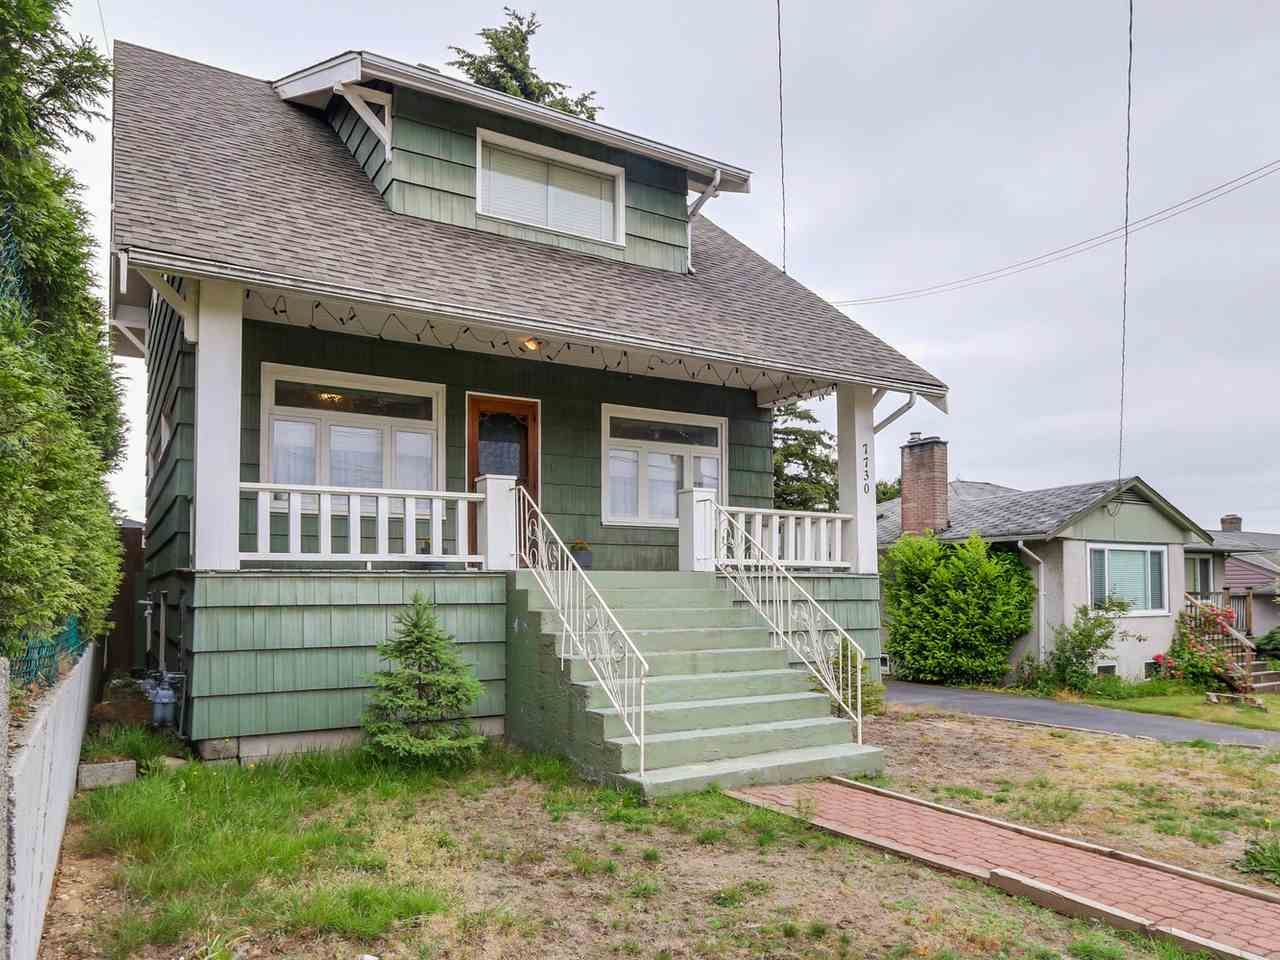 Main Photo: 7730 CANADA WAY in : East Burnaby House for sale : MLS®# R2070679